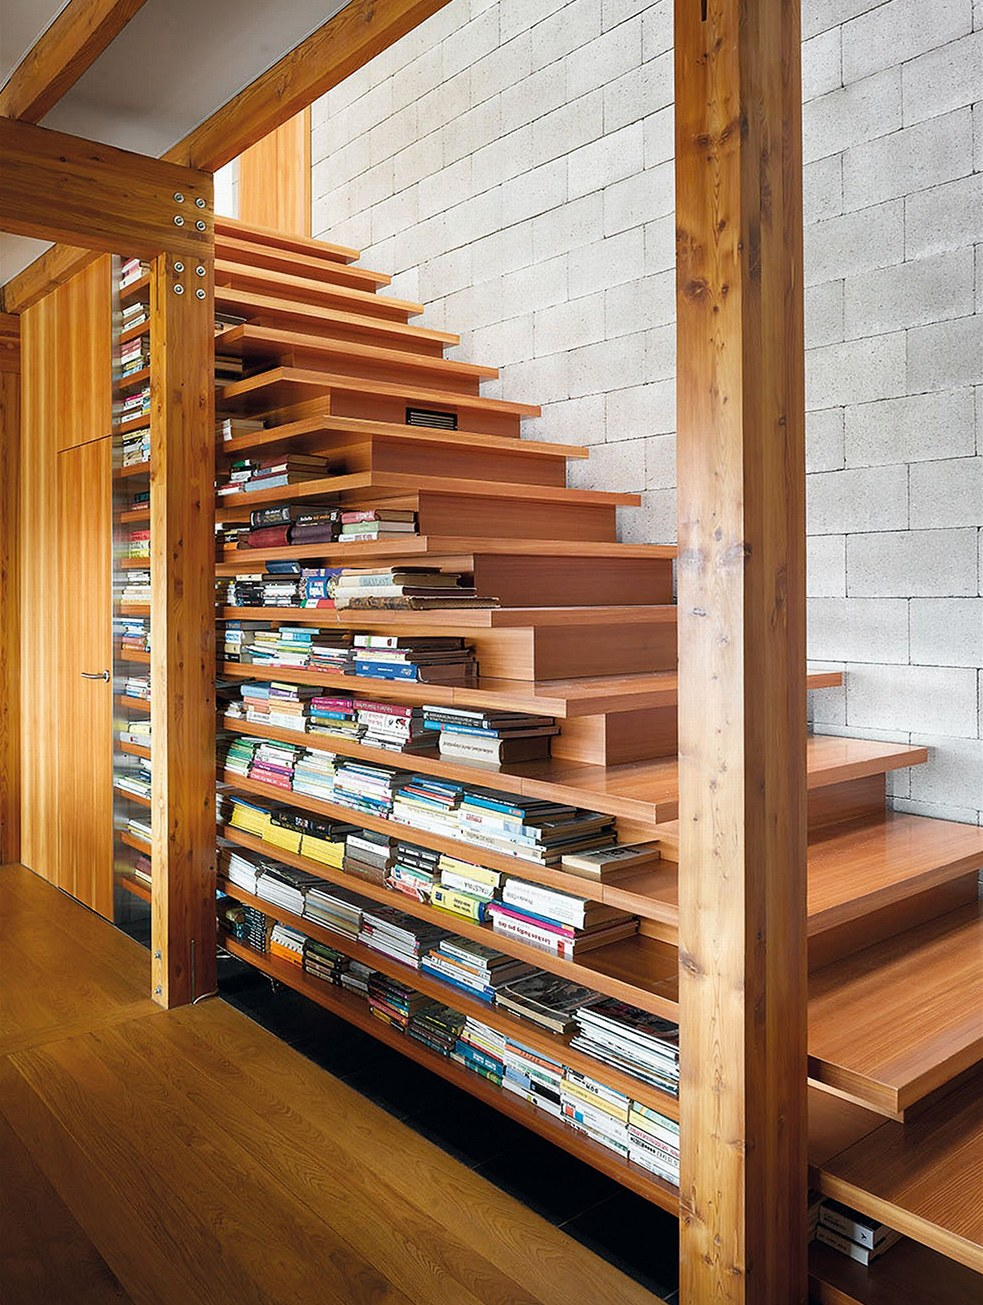 50 creative ways to incorporate book storage in around stairs. Black Bedroom Furniture Sets. Home Design Ideas